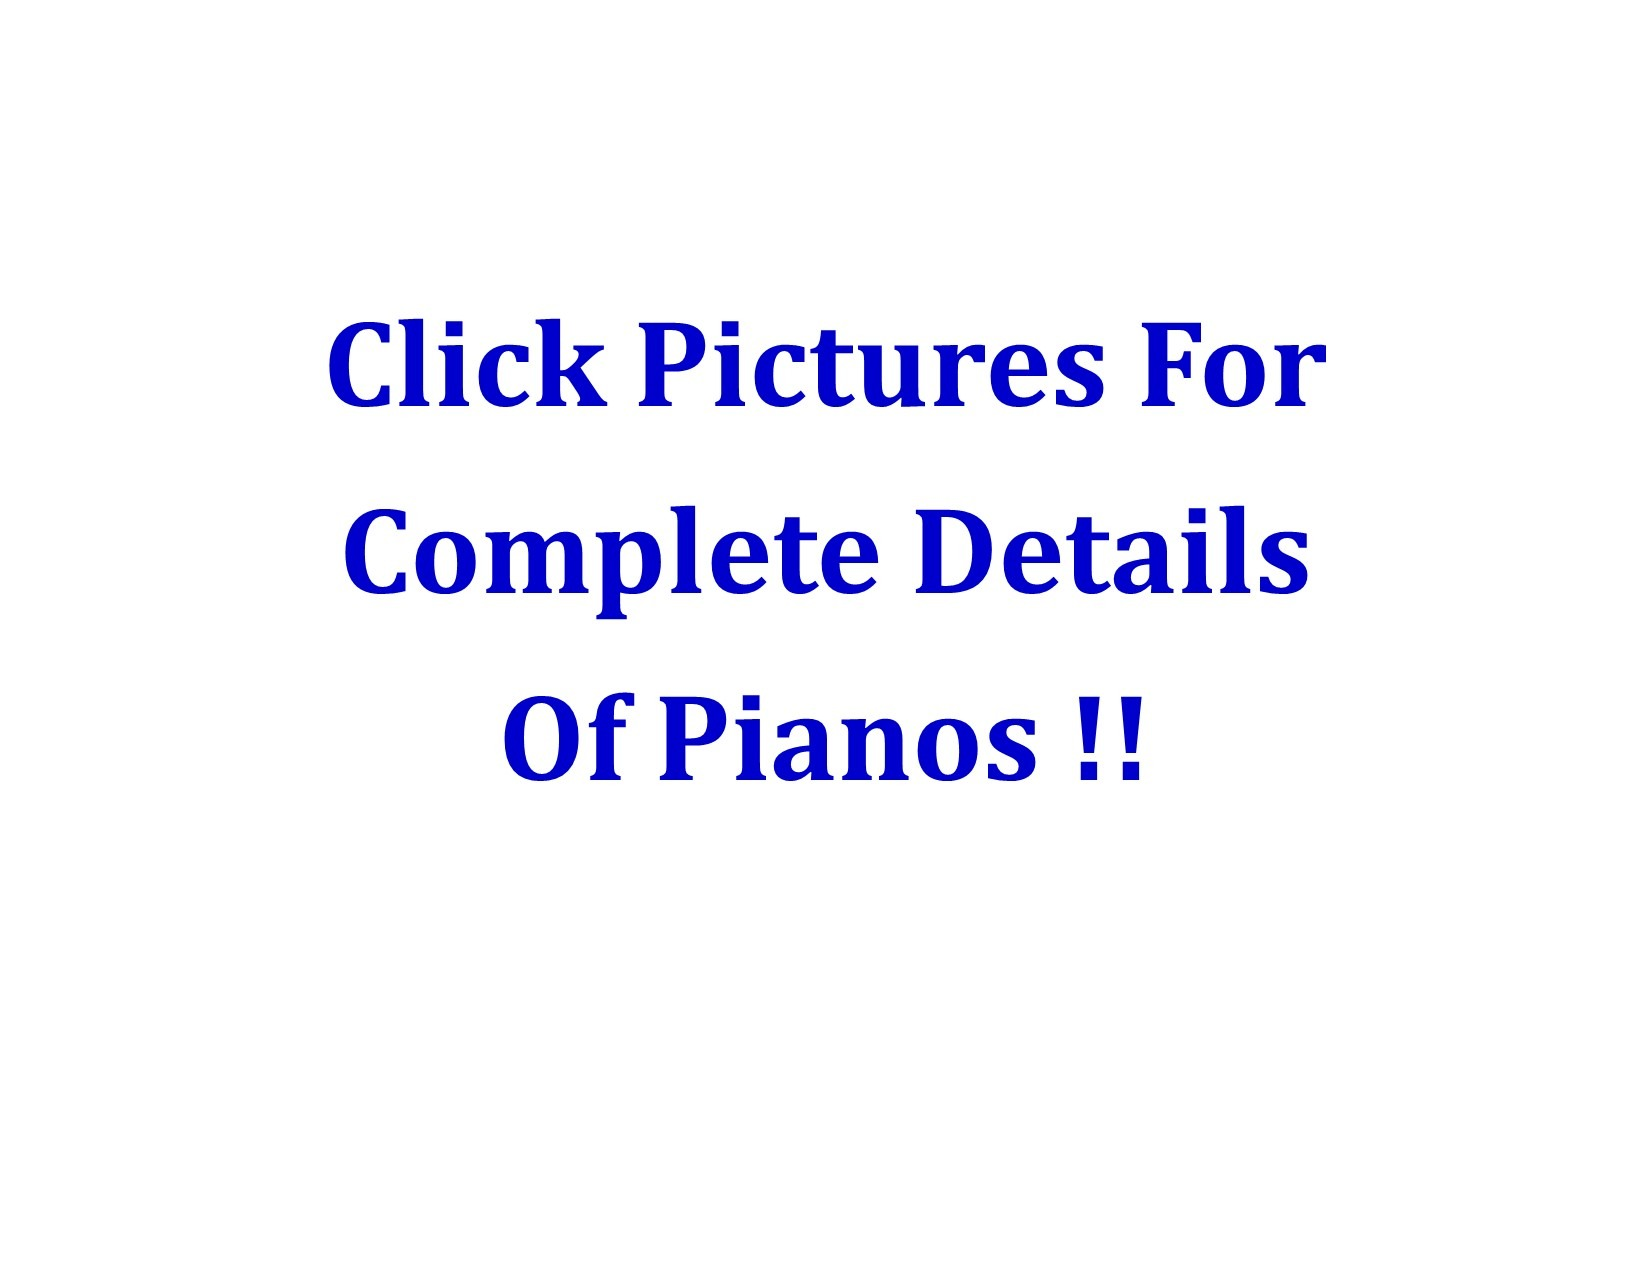 15662- Click Pictures For Complete Details of Pianos !!